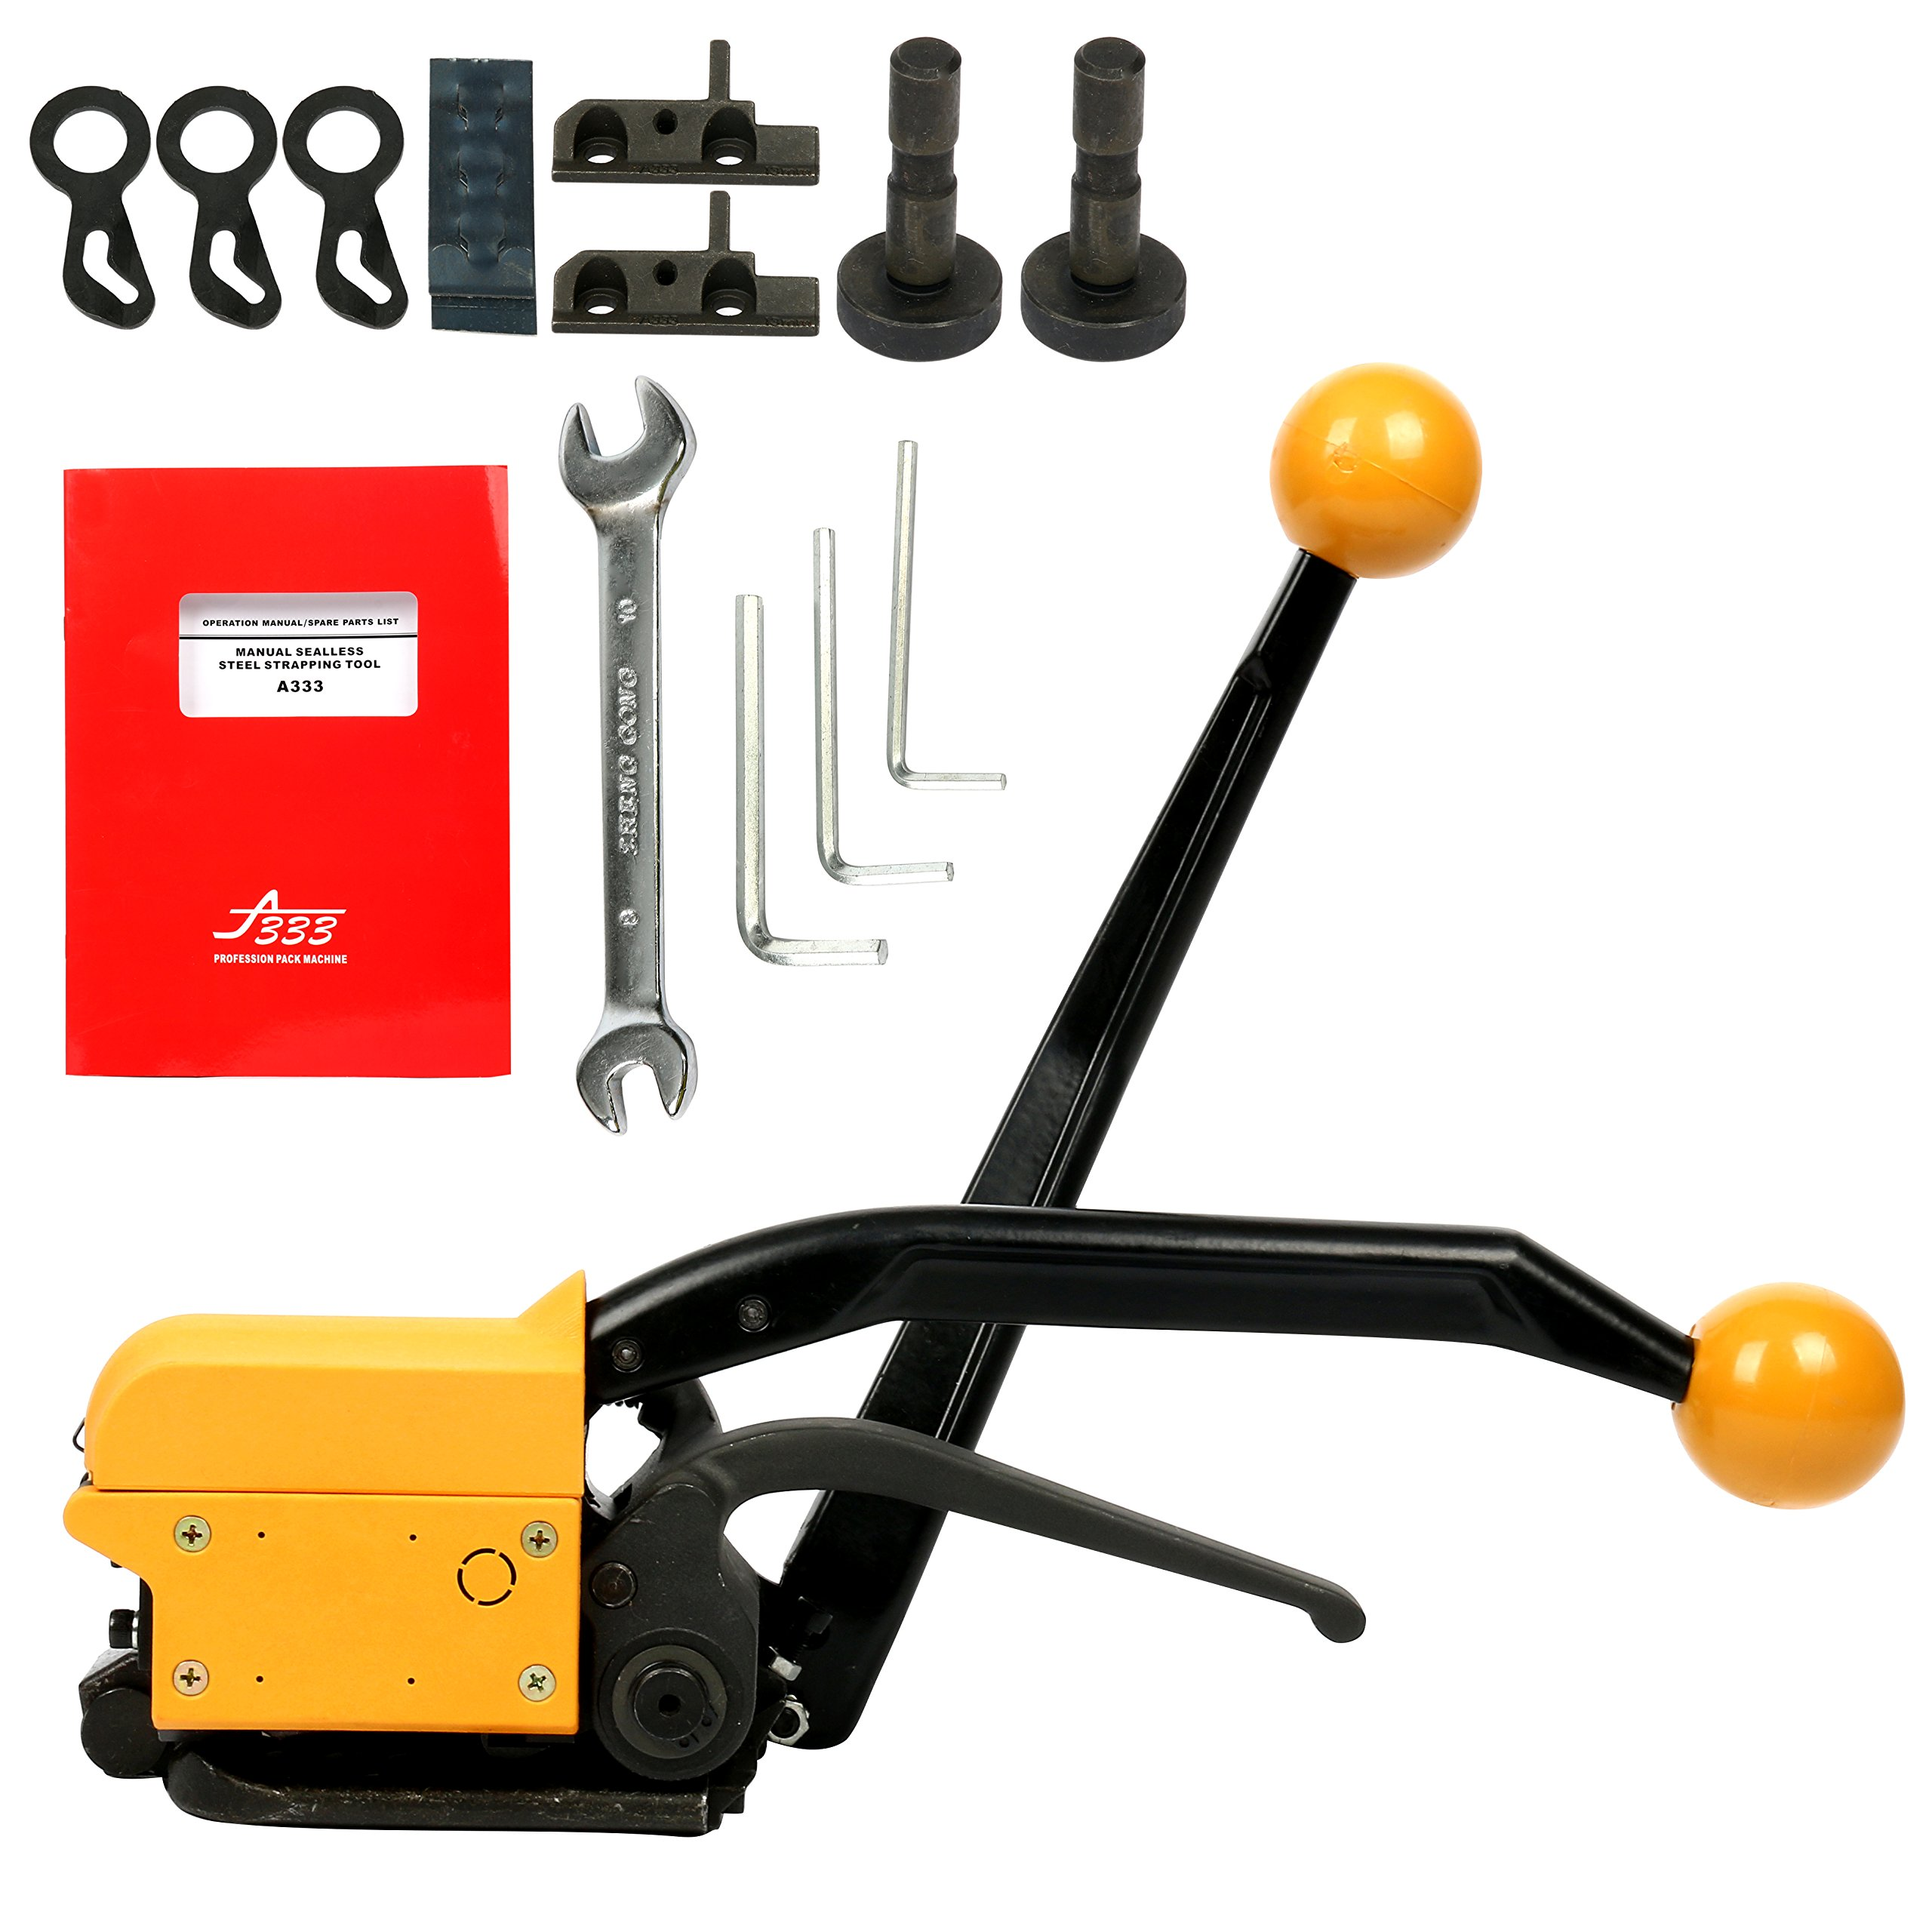 c44fd2ca18d Get Quotations · Yaetek Steel Strapping Tool A333 Manual Strapping Tool  1 2Inch 5 8Inch 3